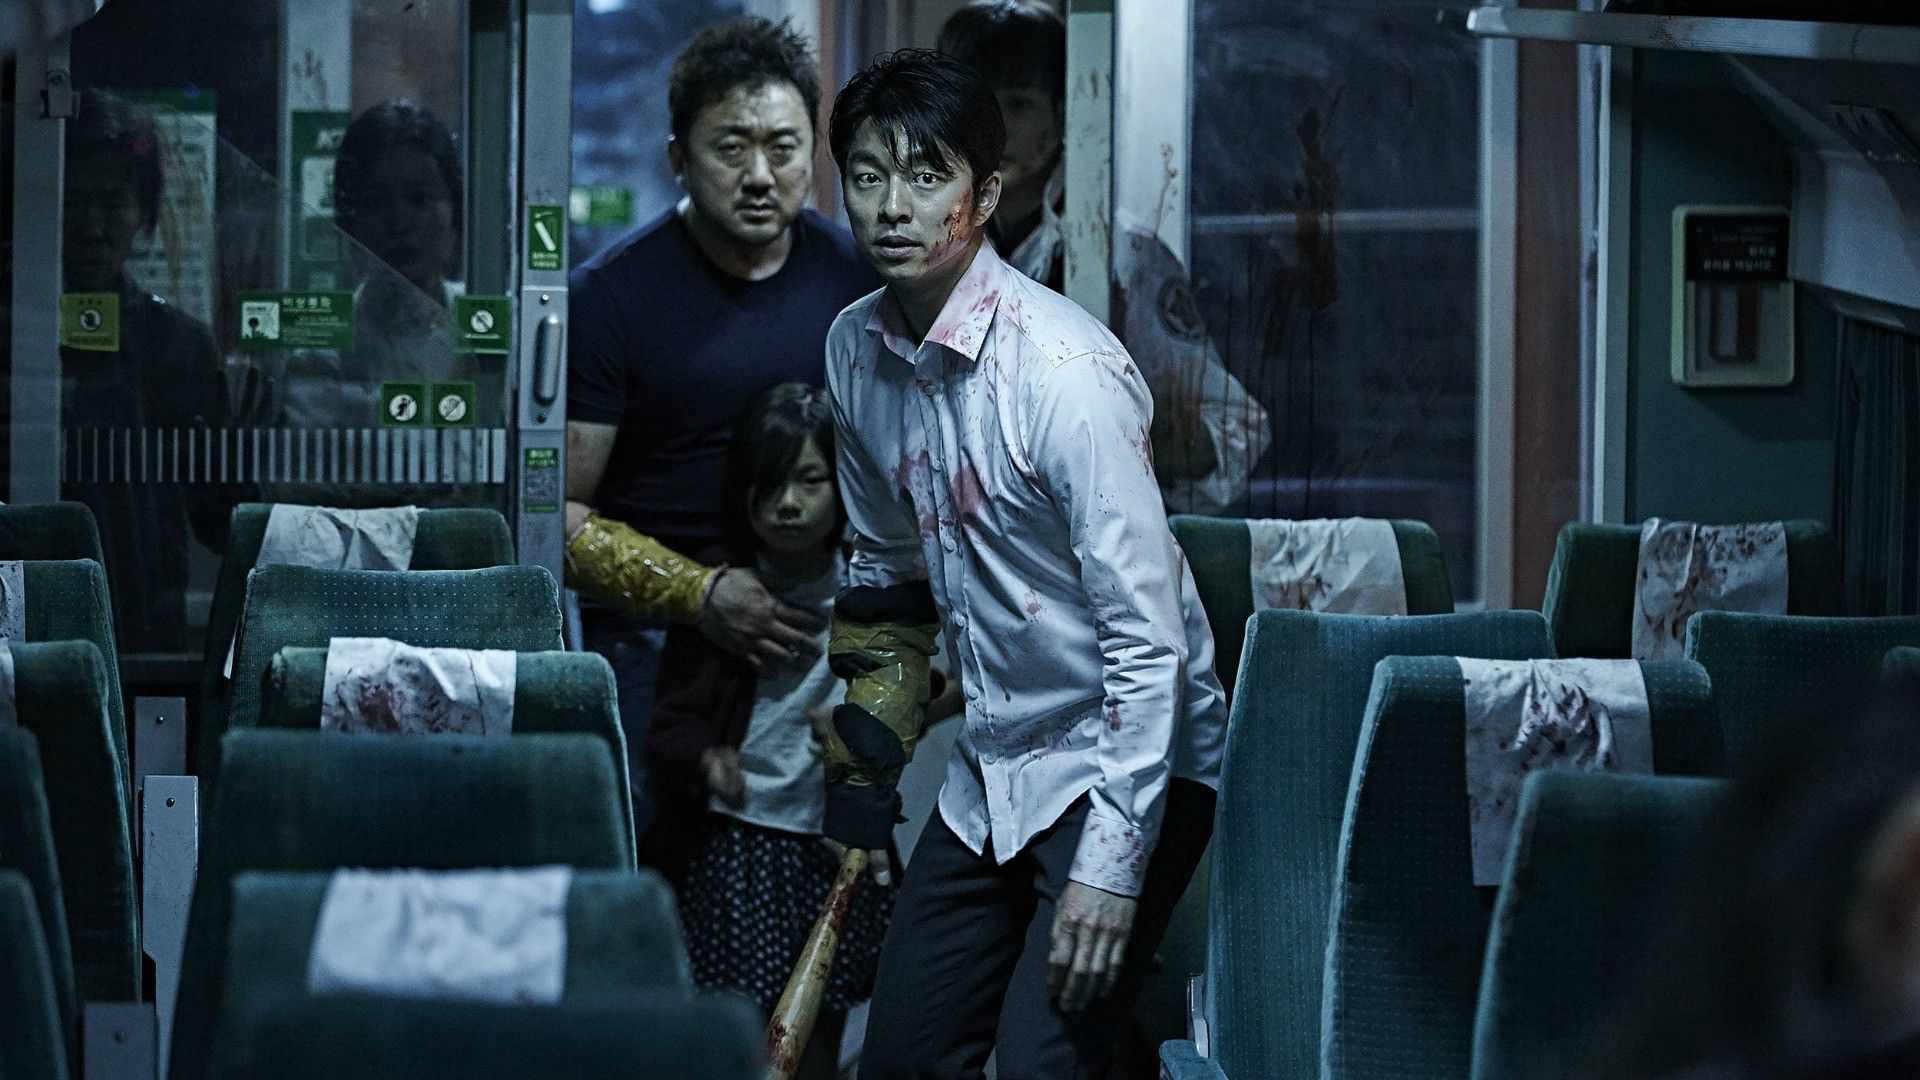 Halloween Horror: The Scariest Asian Movies To Watch on October 31